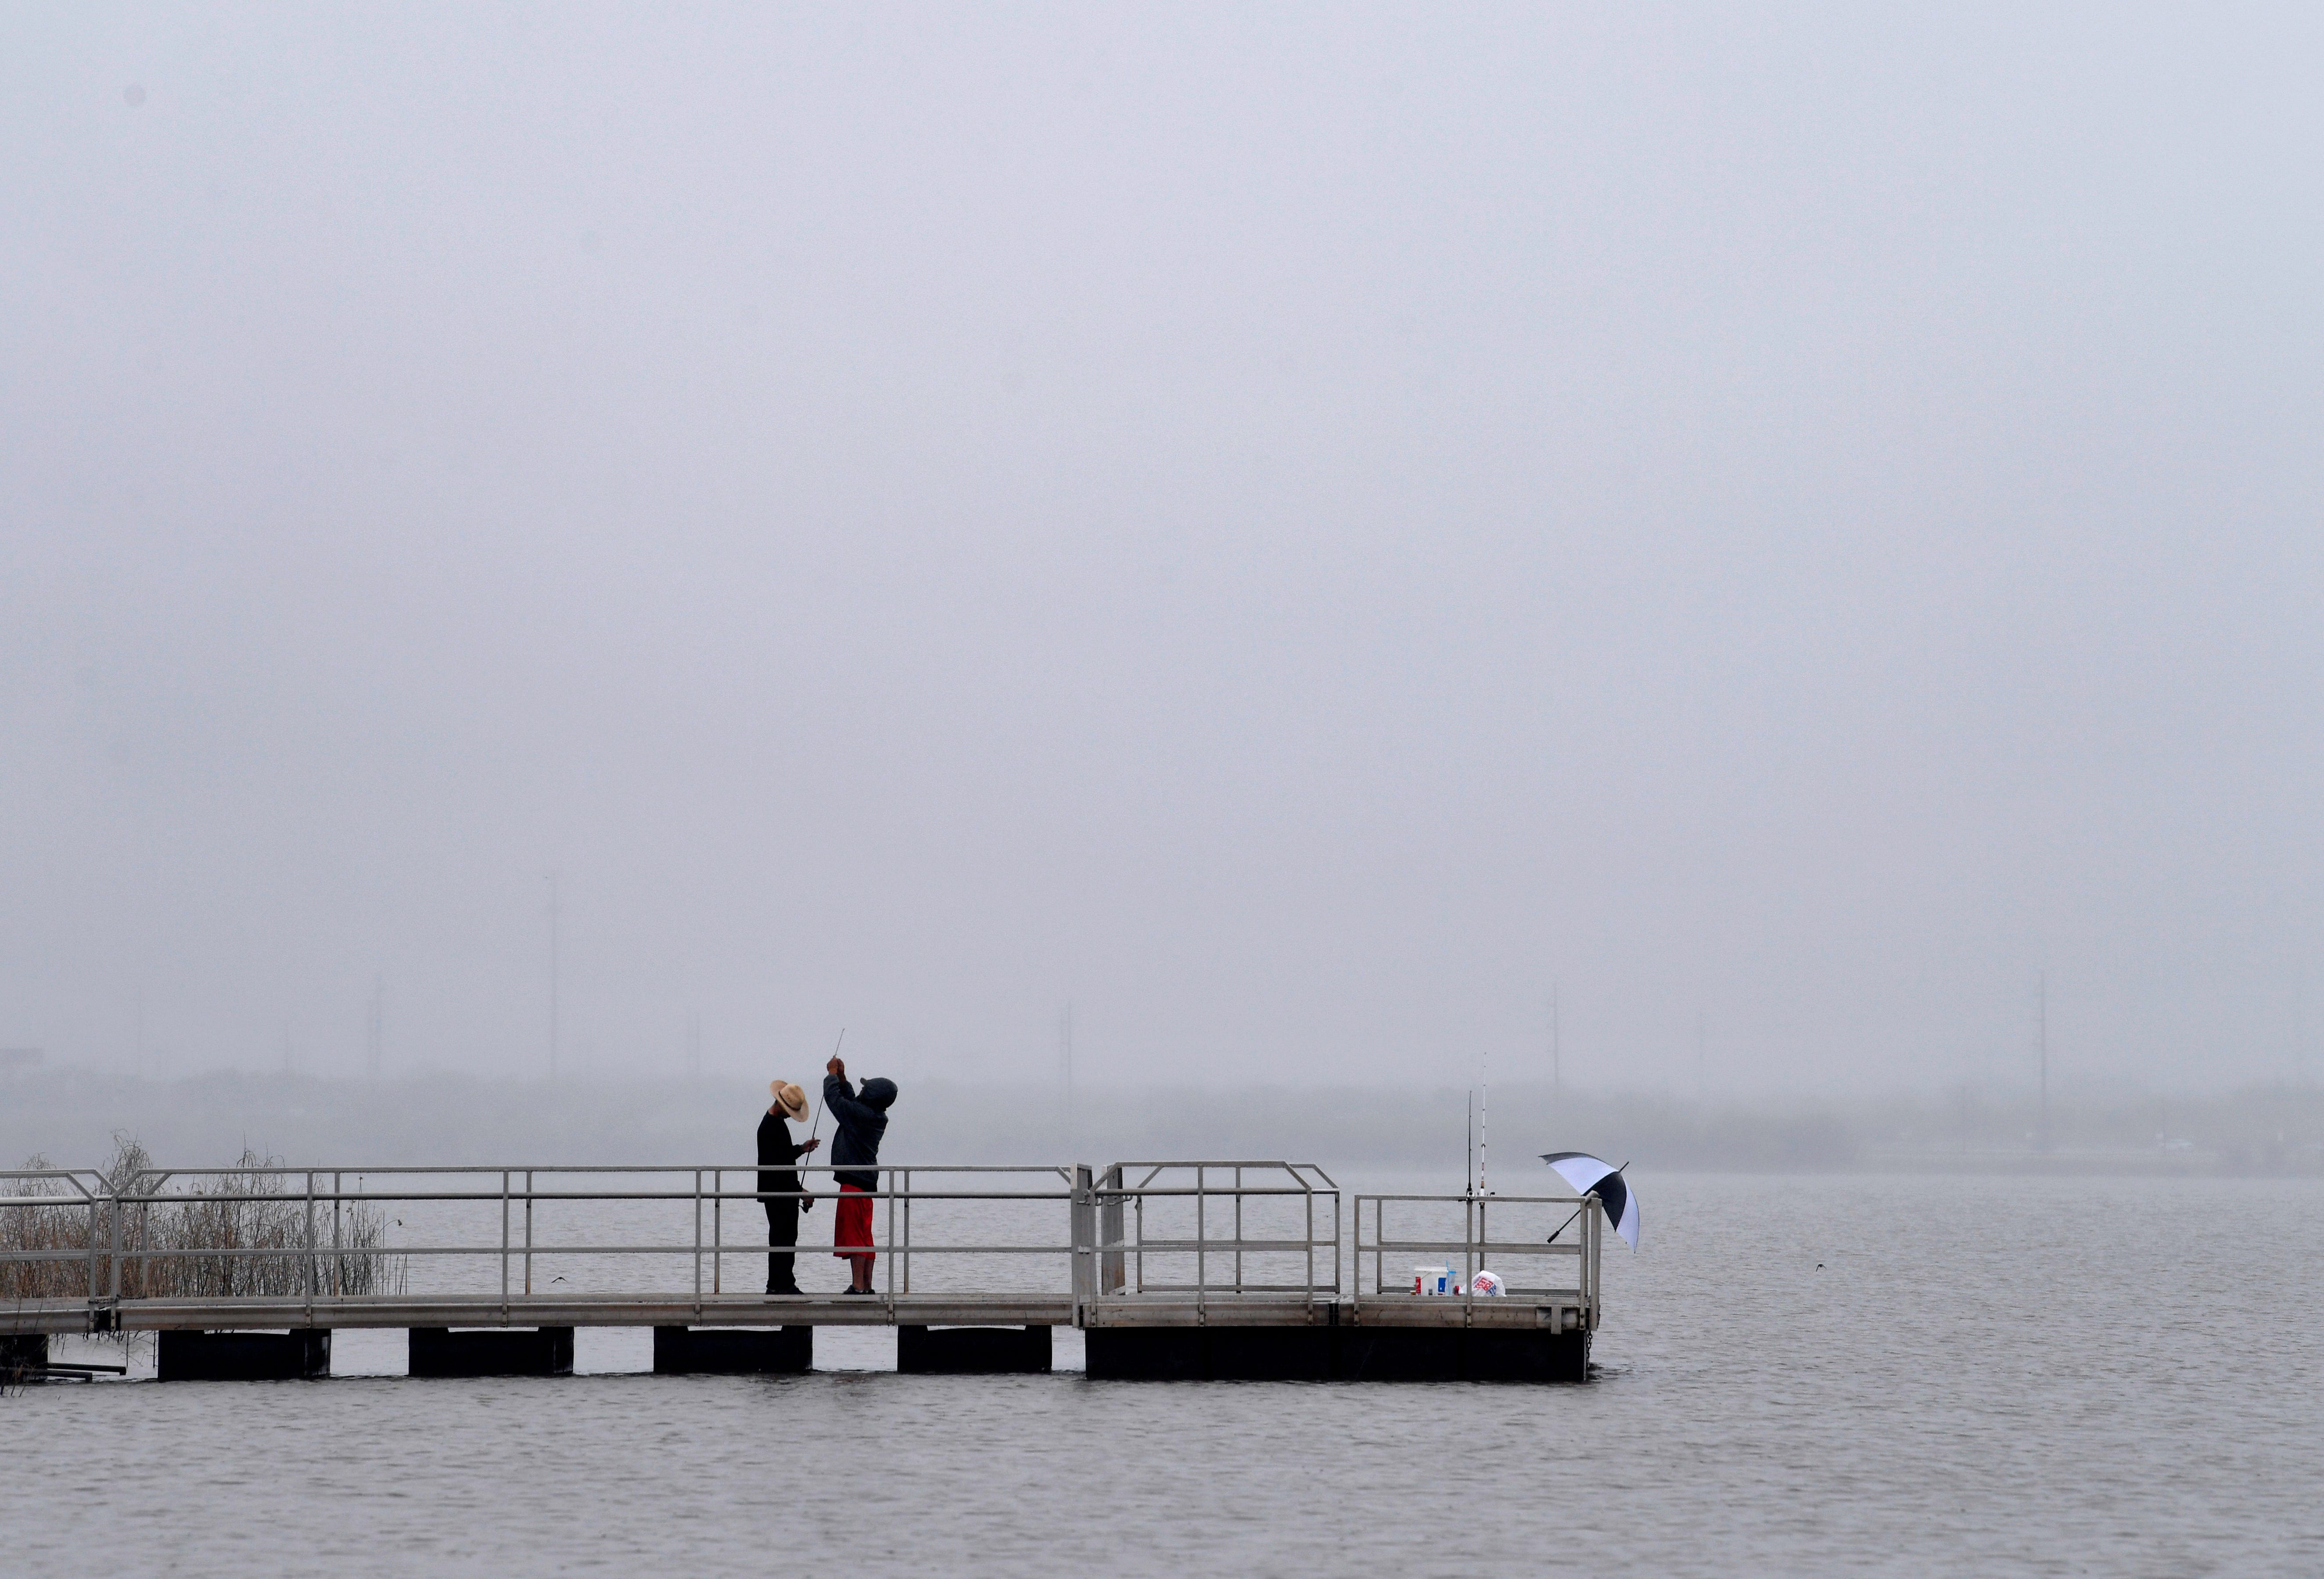 Nicholas Ontiveros (left) looks down at his reel while his father Alfonso Salazar fixes the fishing pole Wednesday April 24 at Kirby Lake. They said the fishing was light during the morning drizzle, Salazar said they were only catching small fish, and the pair packed up before the heavier rain started to move in.